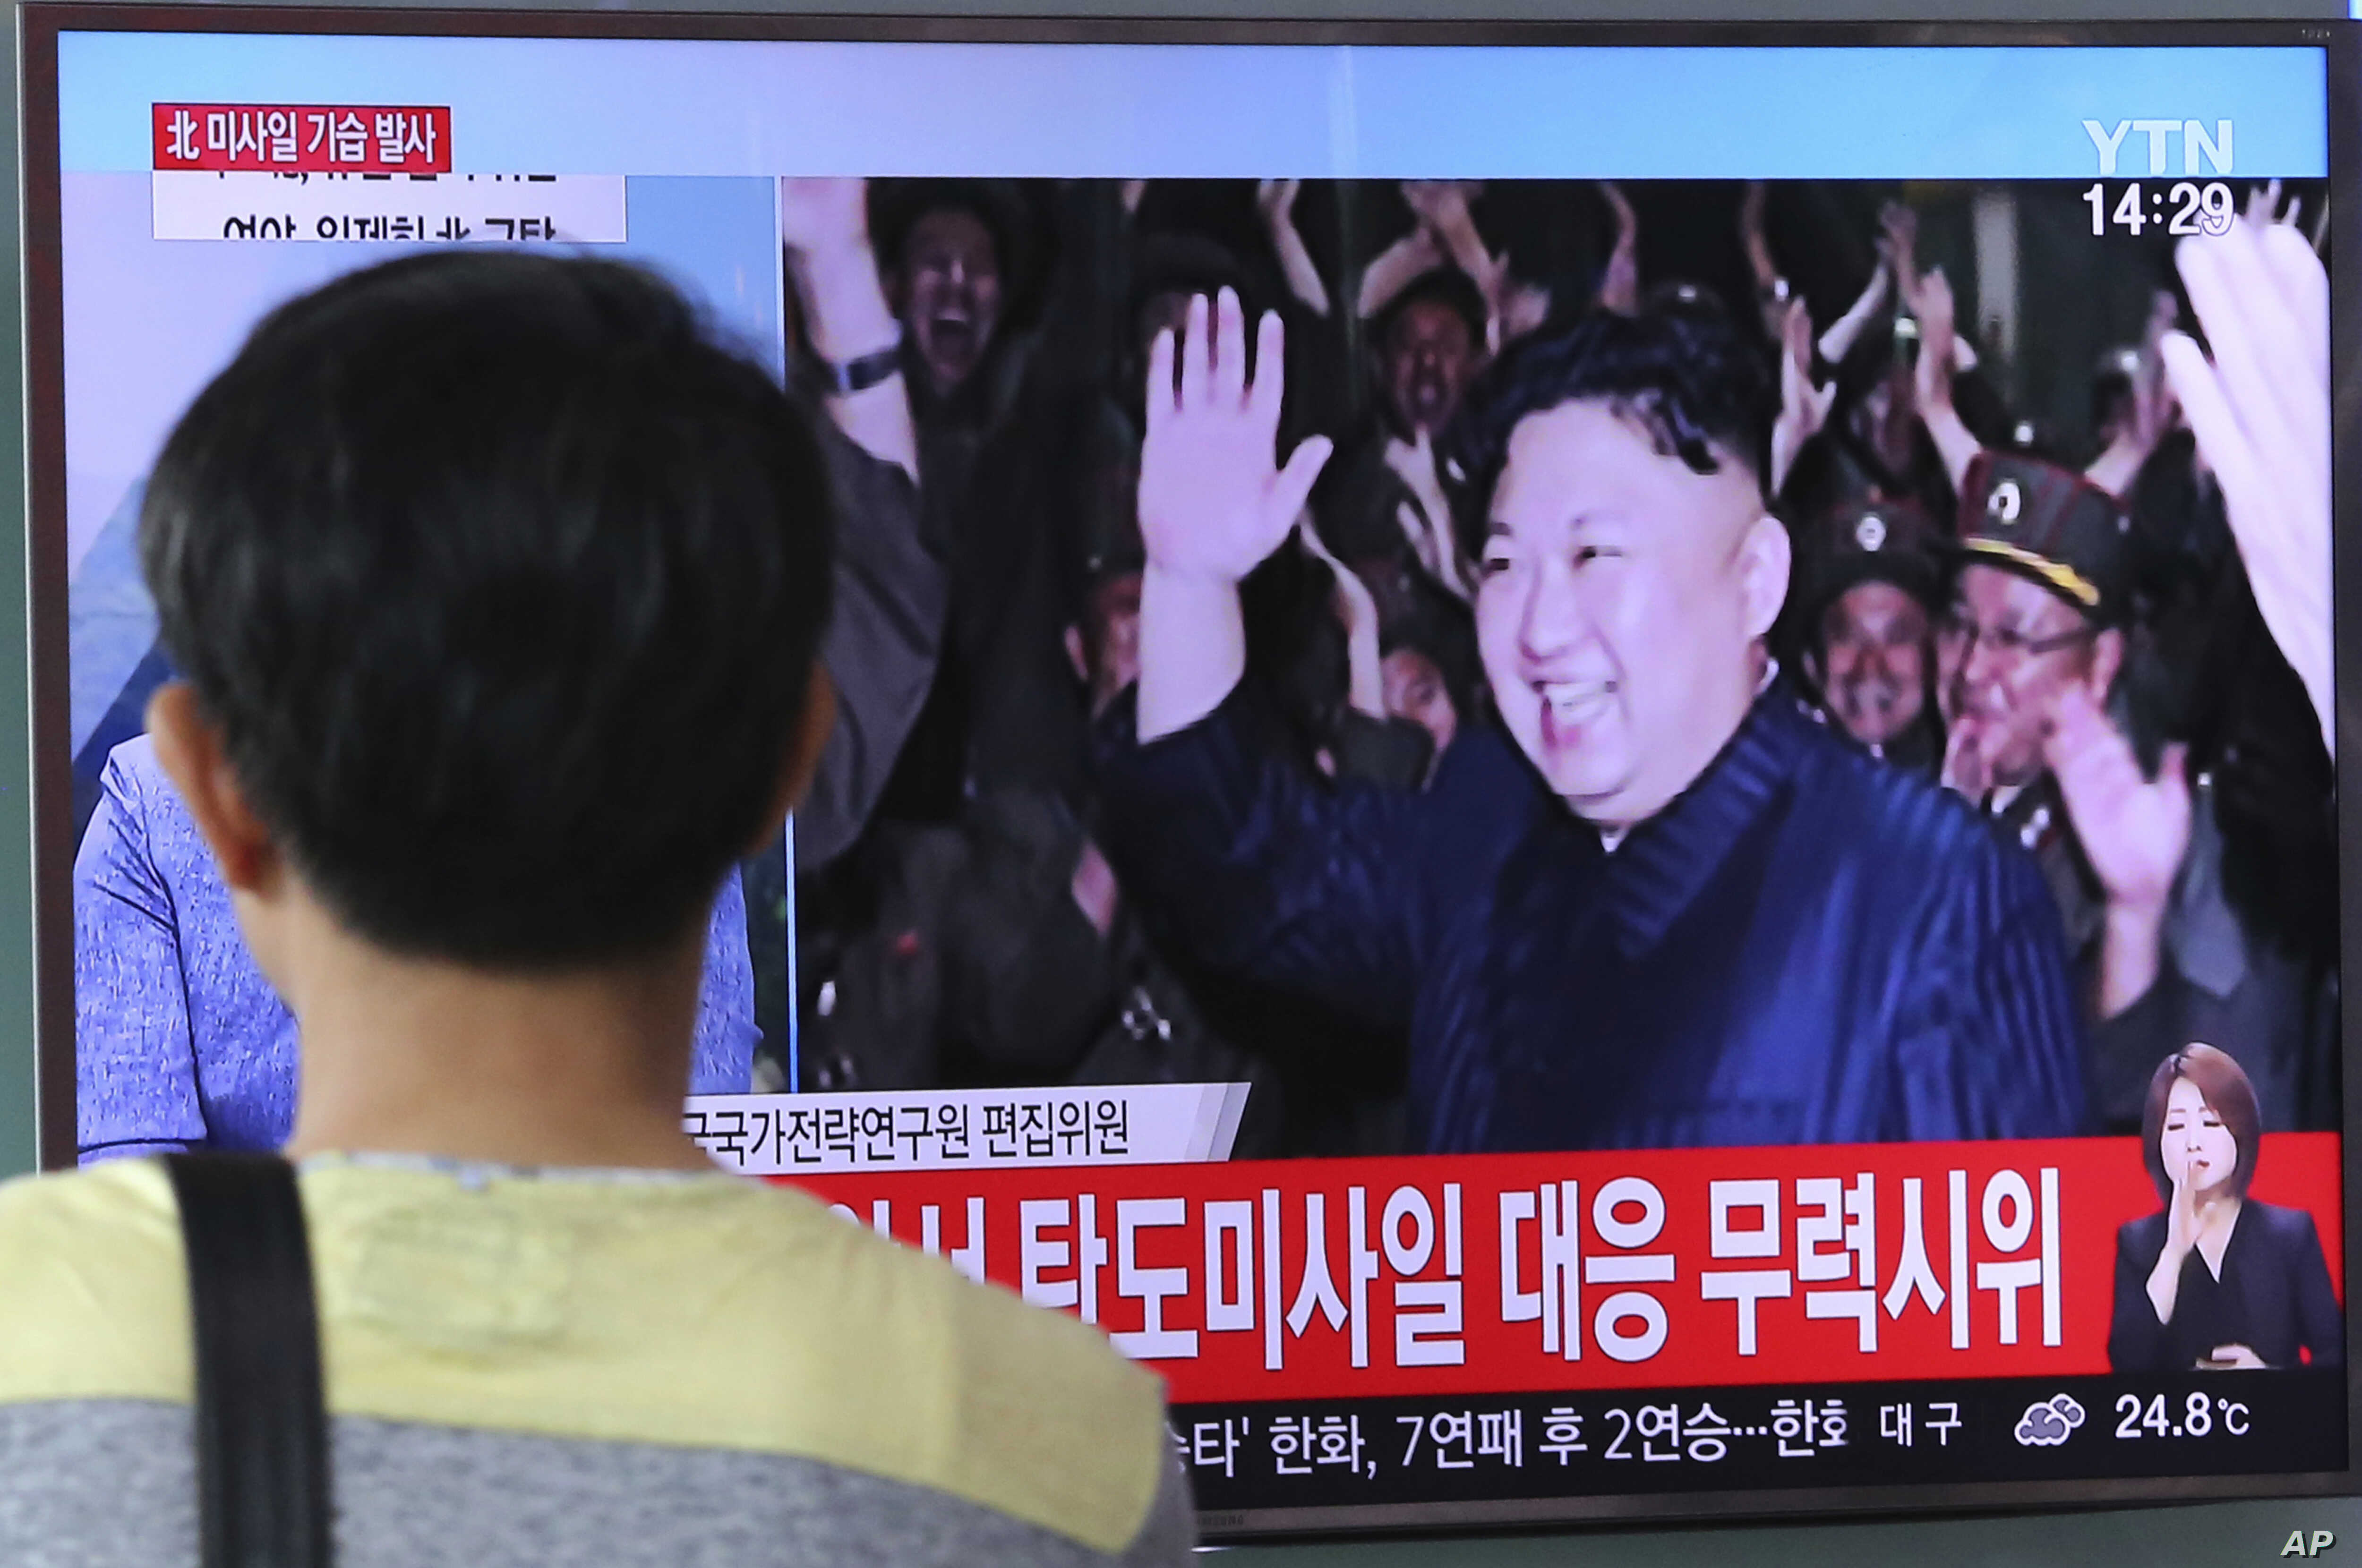 A man watches a TV news program showing an image of N. Korean leader Kim Jong un during the North's latest test launch of an intercontinental ballistic missile, at Seoul Railway Station in Seoul, S. Korea, July 29, 2017.